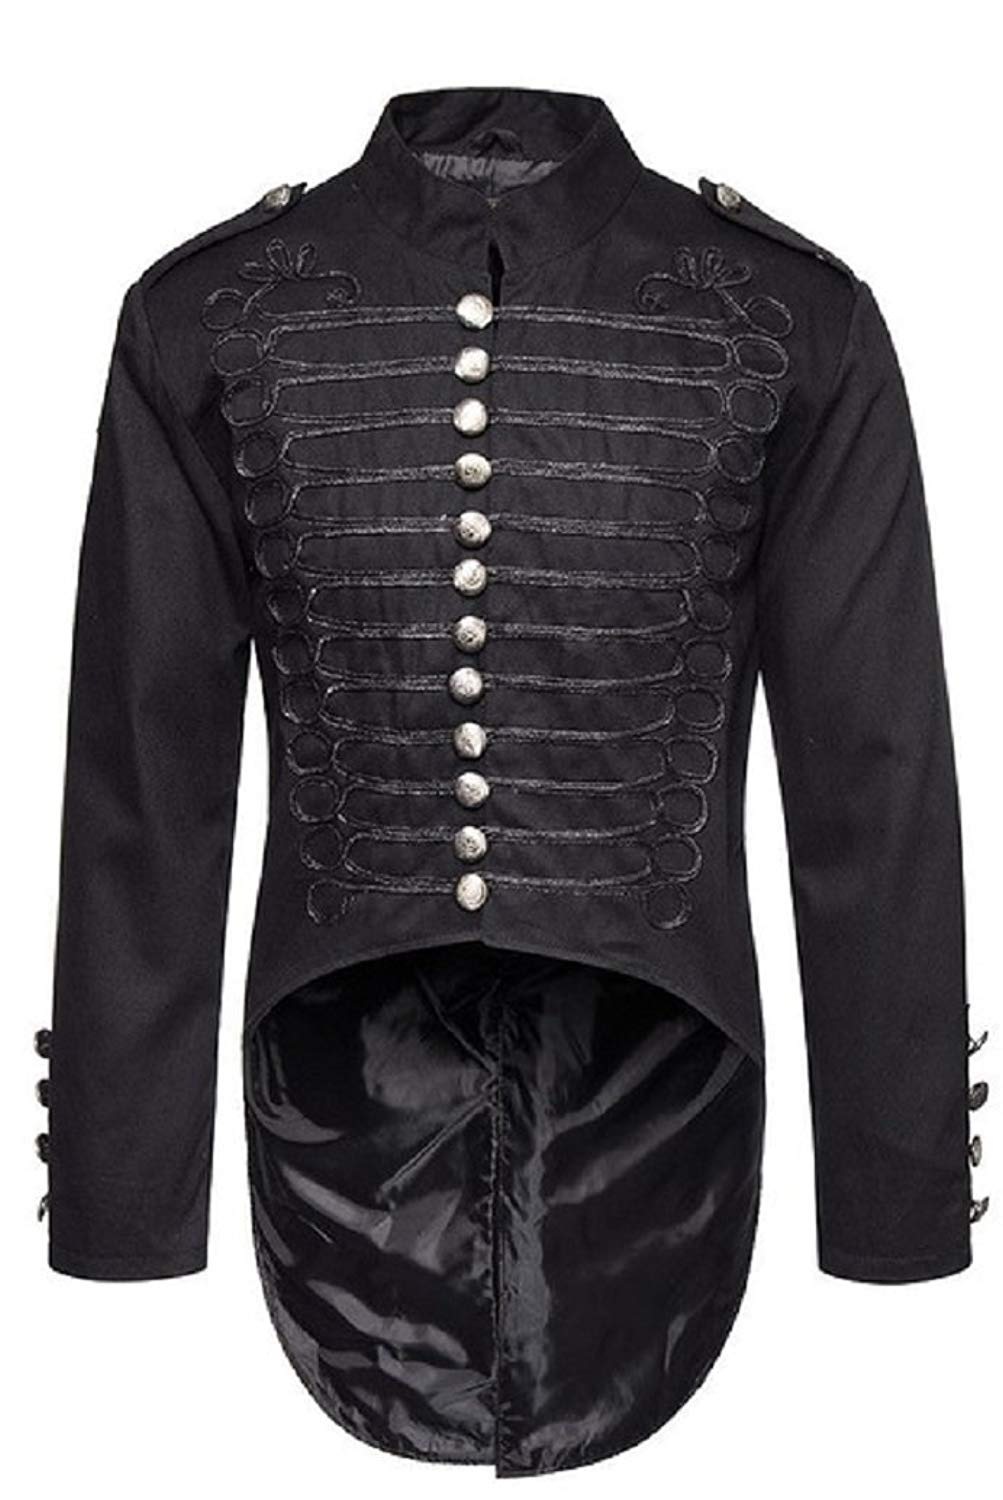 692152afb2e7 Get Quotations · Gothic Master Gothic Steampunk Vintage Victorian Military  Style Tailcoat Jacket For Men